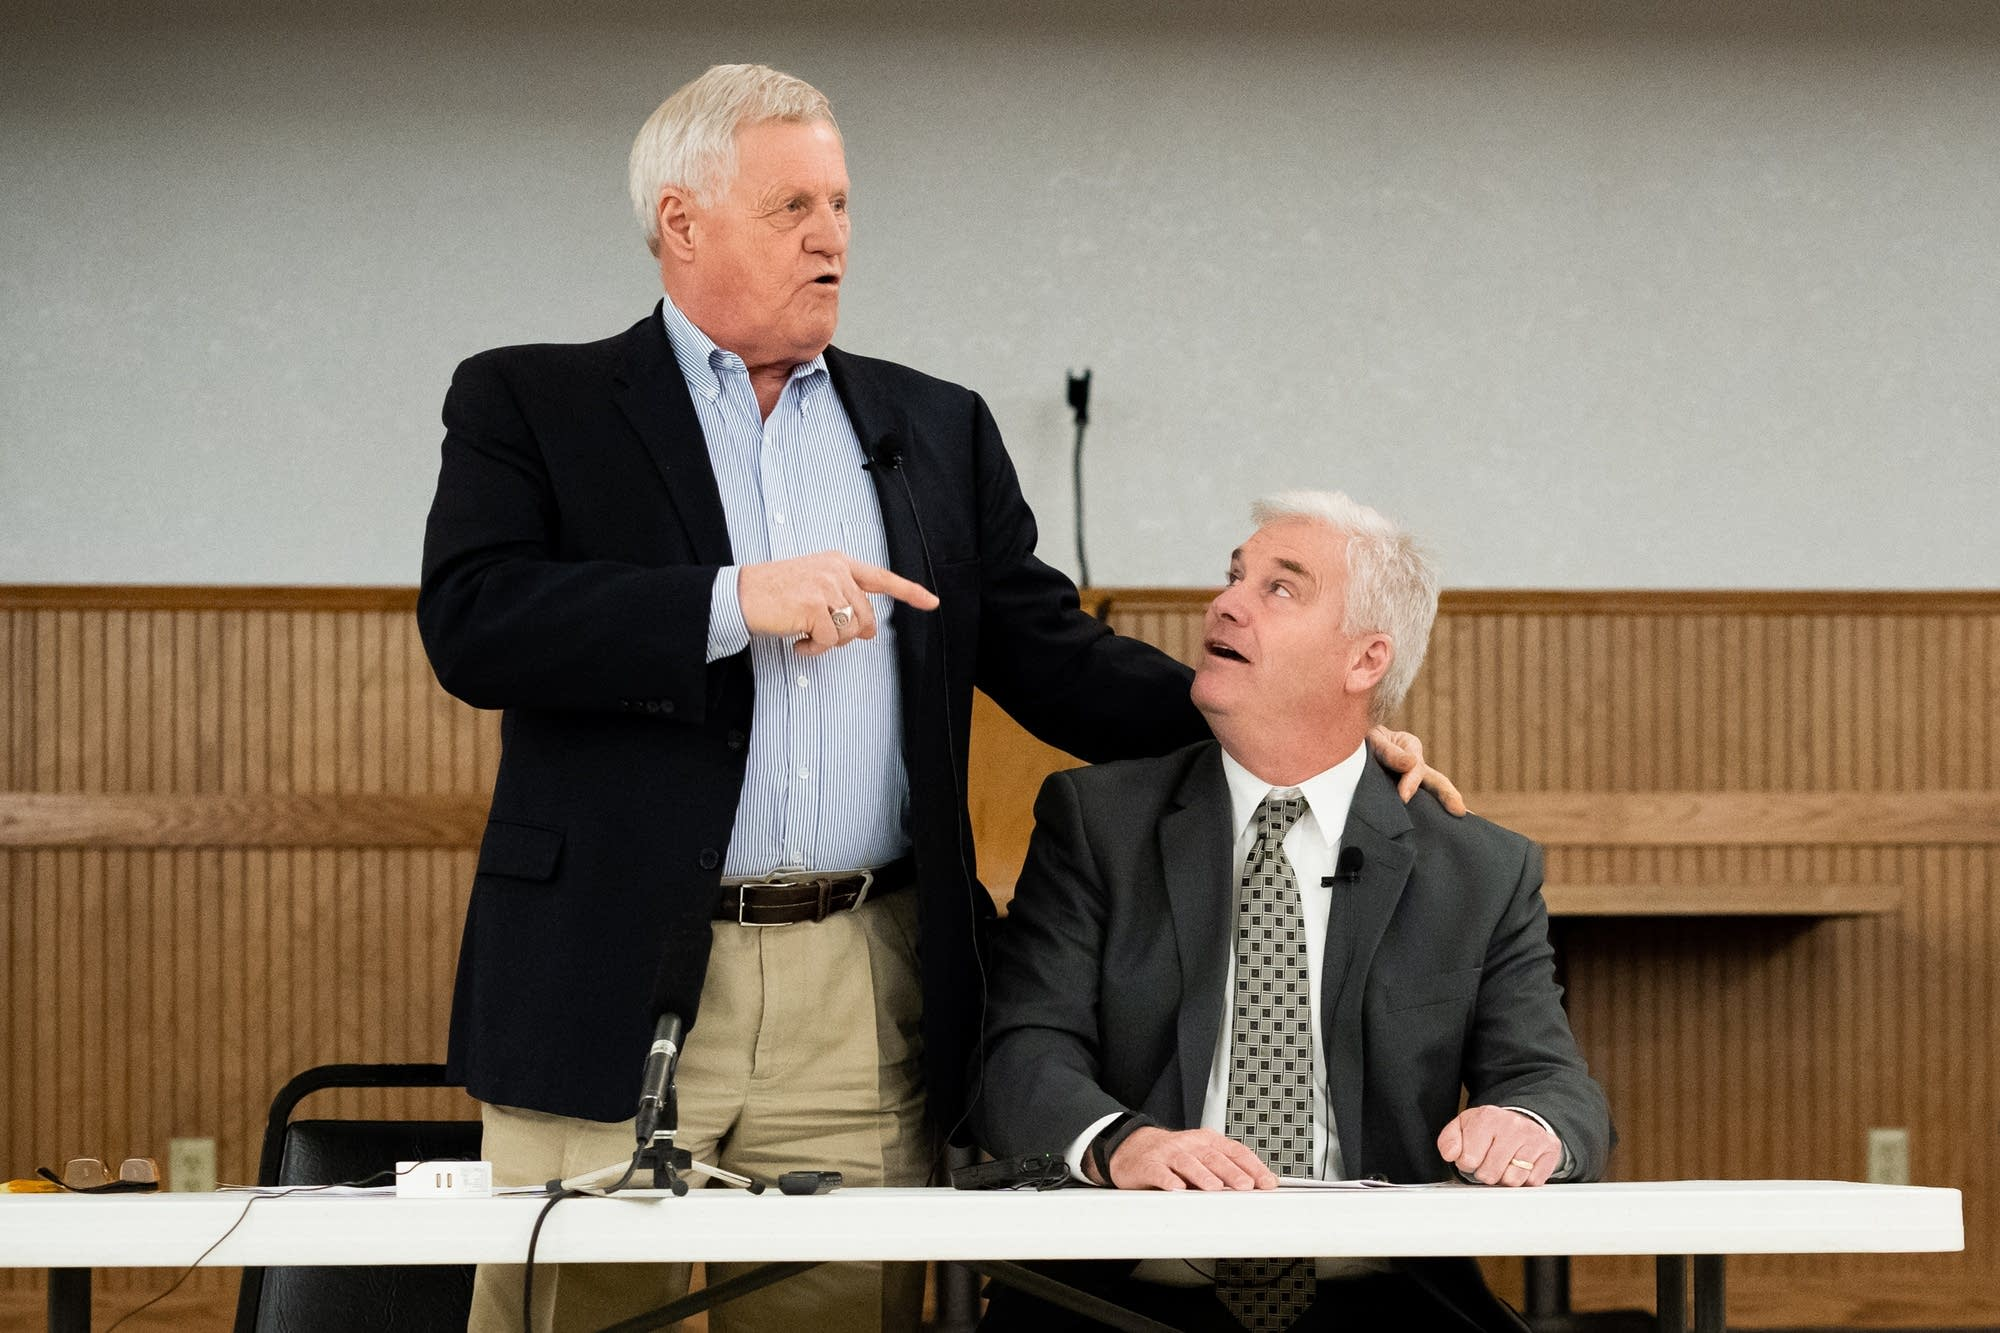 Rep. Collin Peterson, left, and Rep. Tom Emmer tell jokes